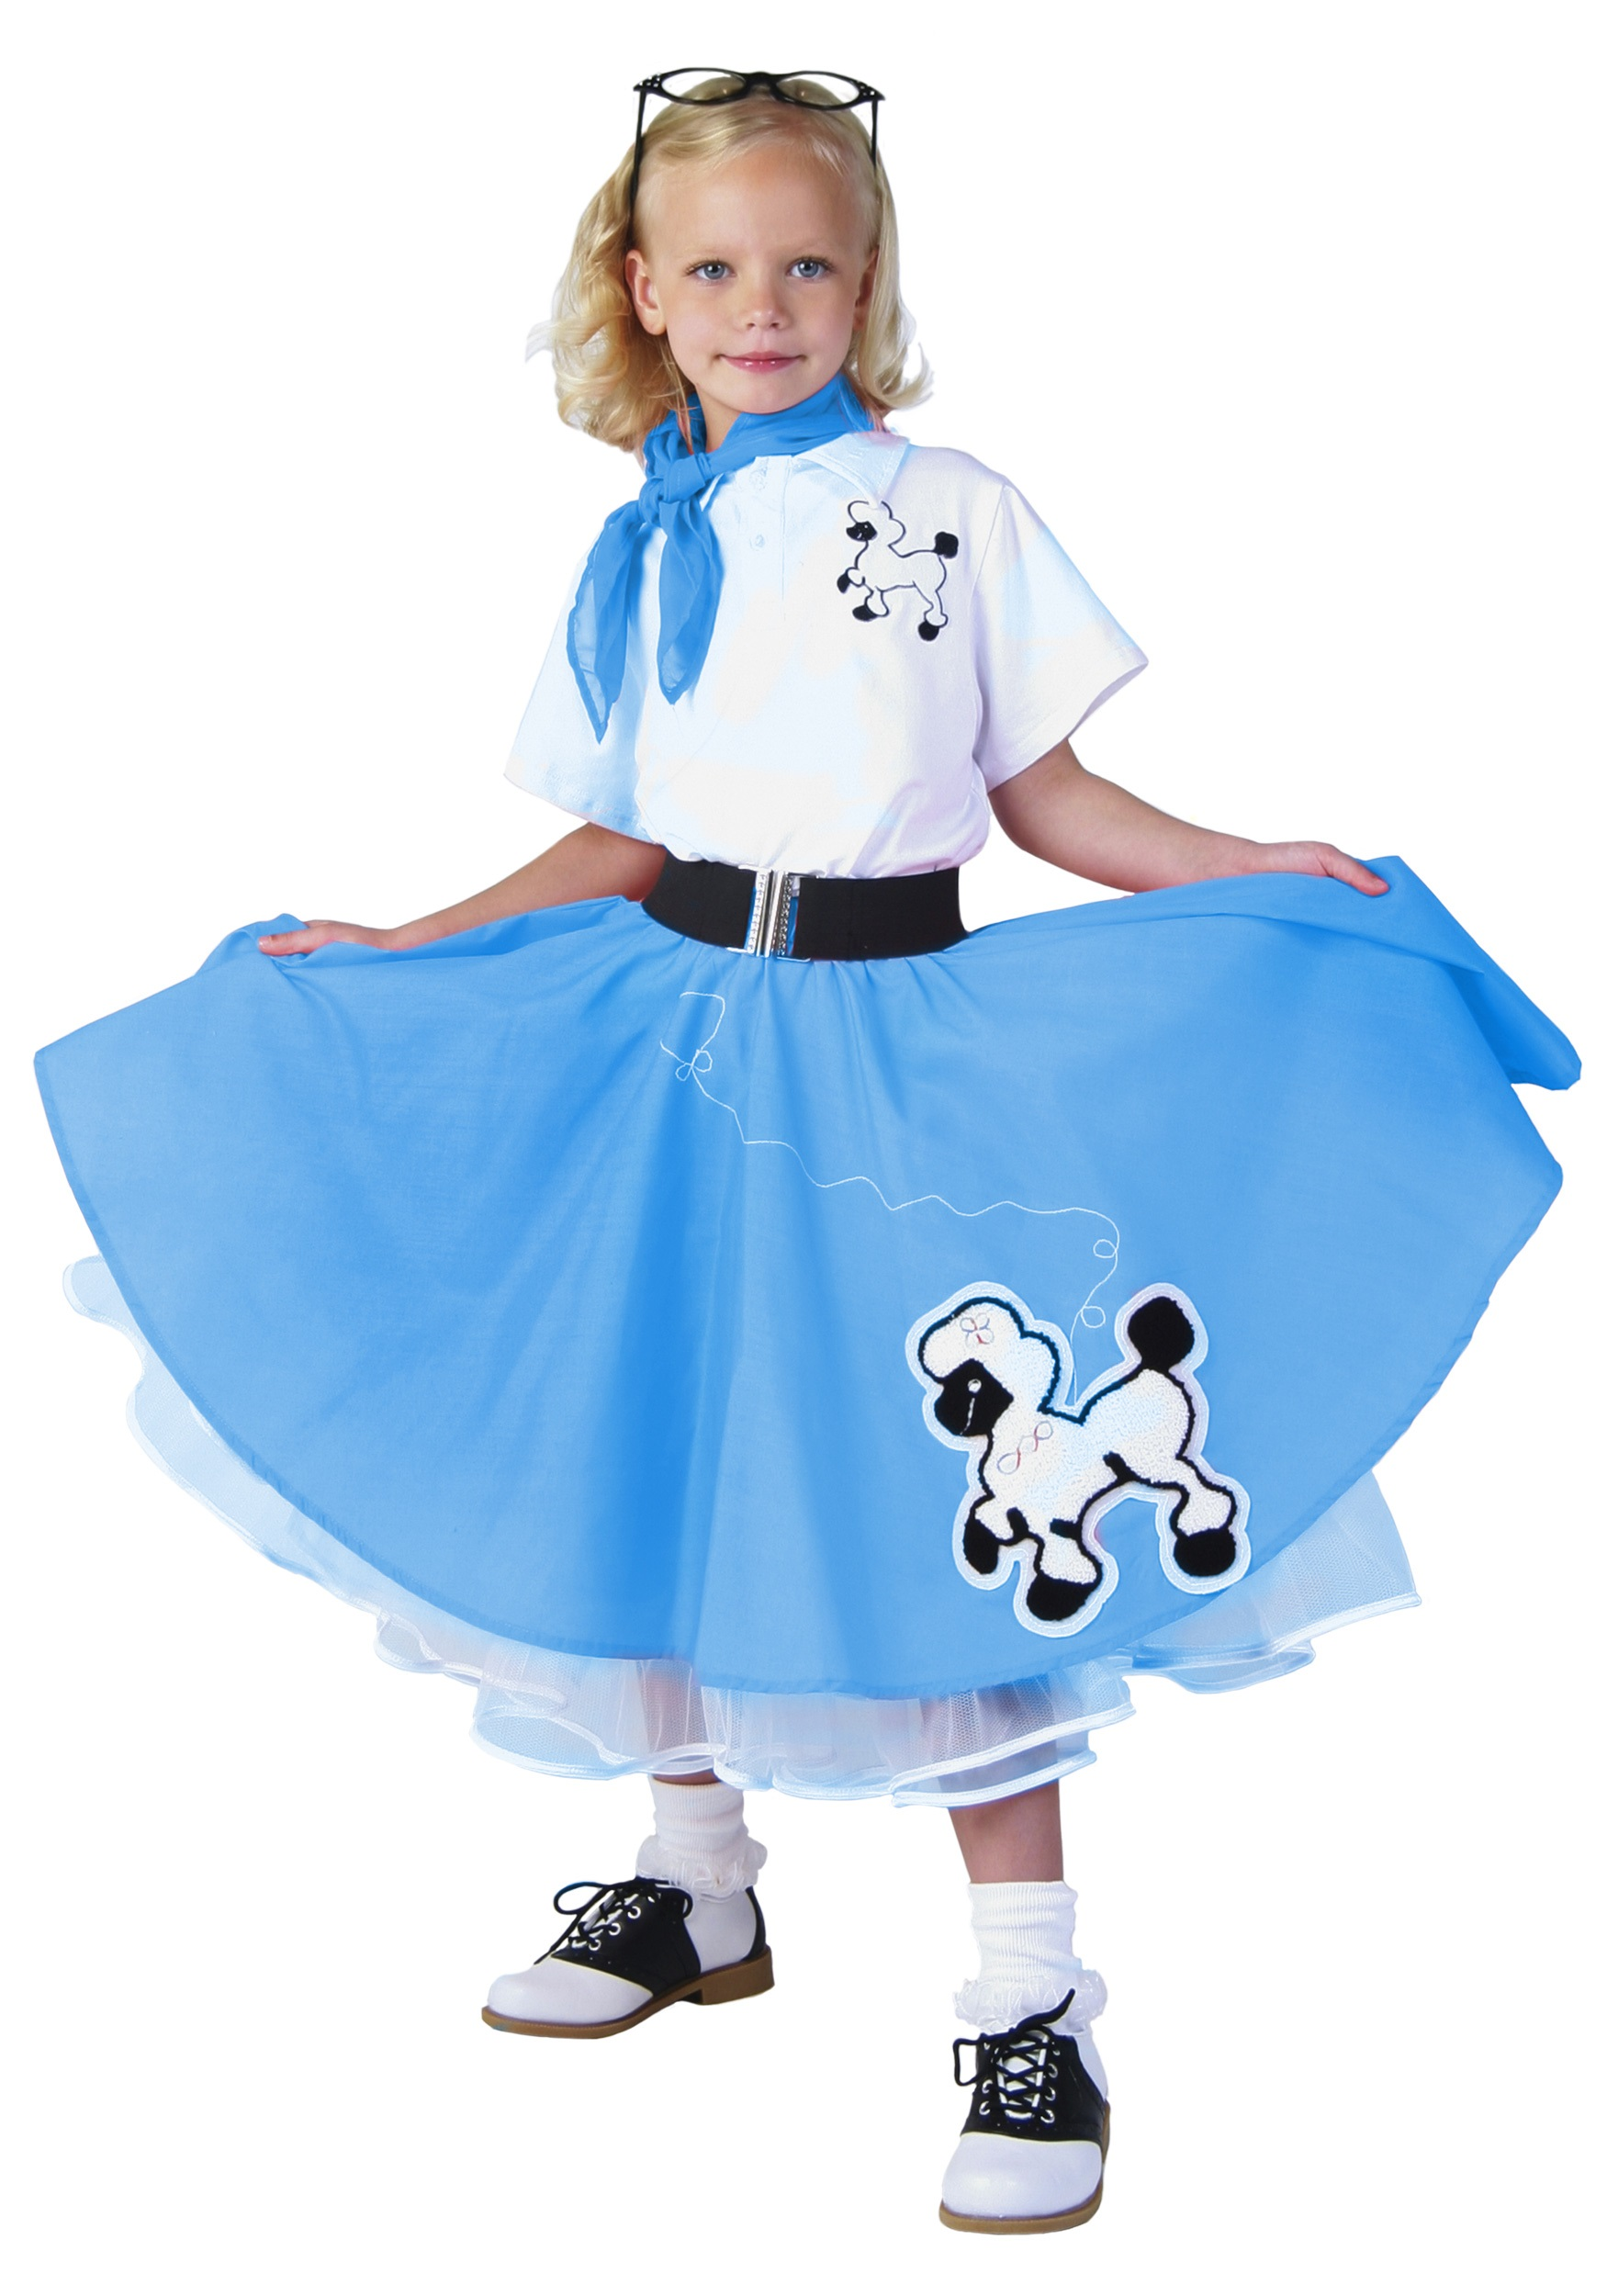 sc 1 st  Halloween Costumes & Kids Deluxe Blue Poodle Skirt Costume - Halloween Costume Ideas 2016